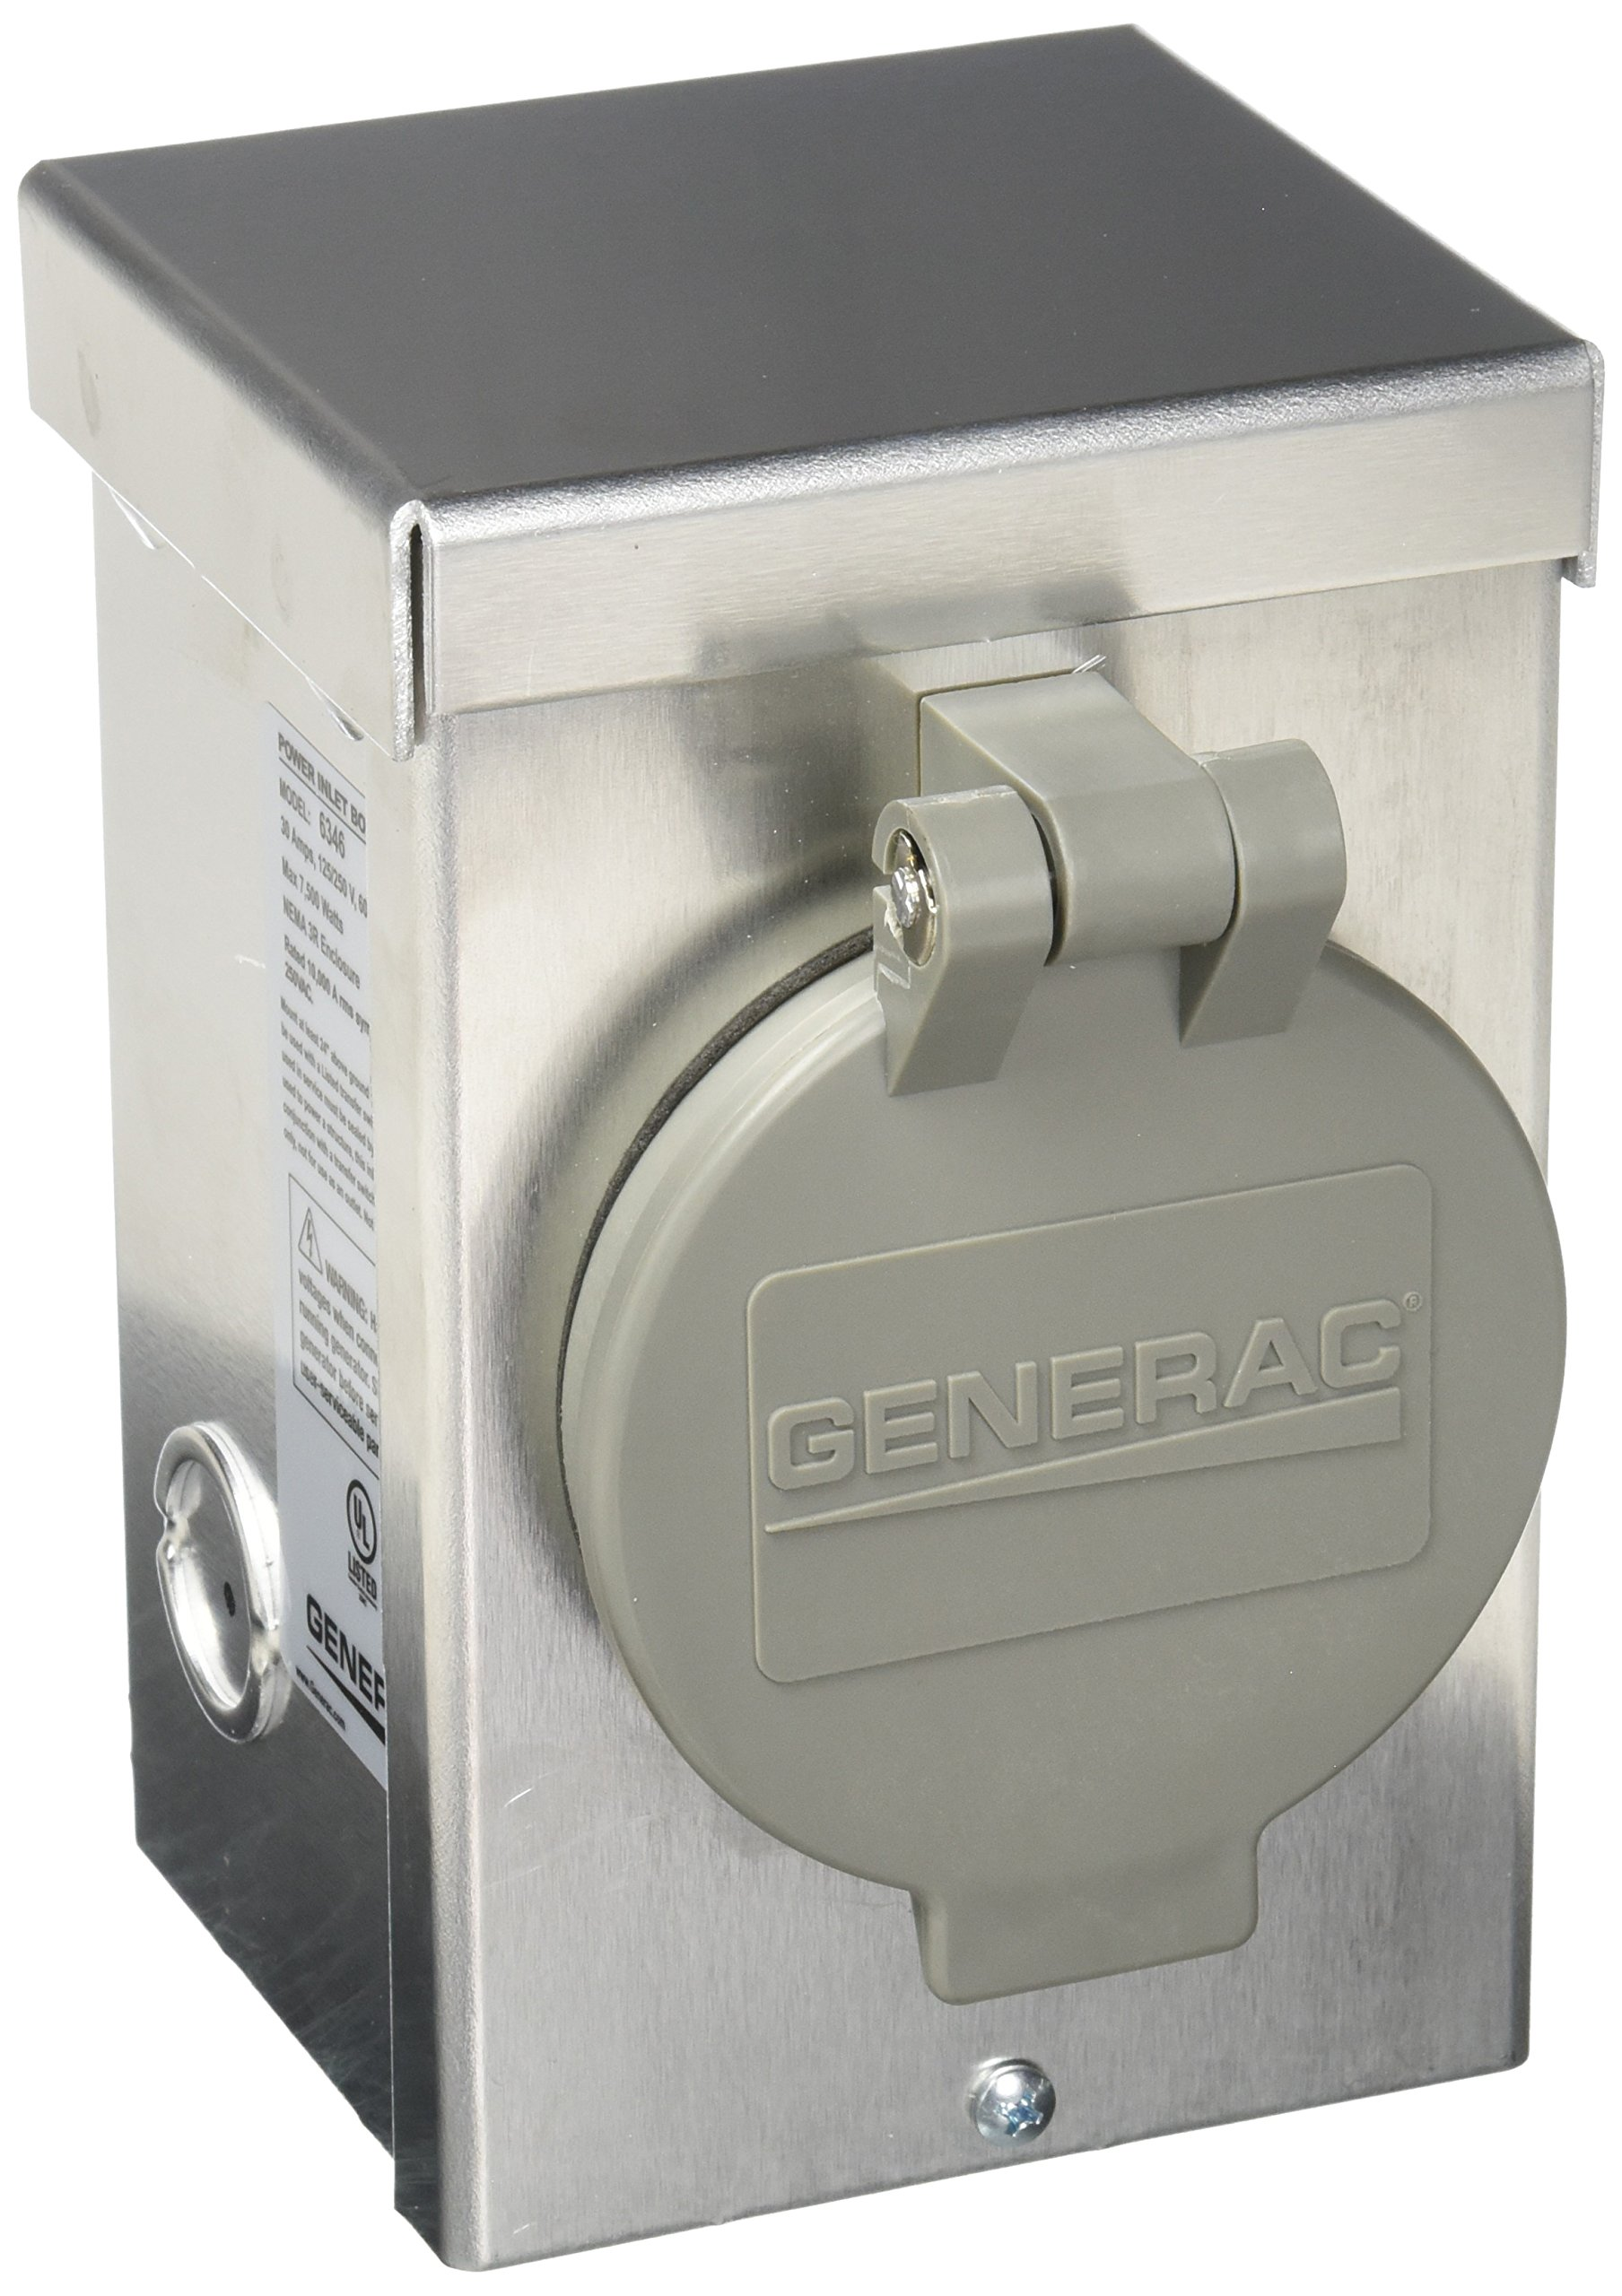 Generac 6346 30-Amp 125/250V Aluminum Power Inlet Box with Spring-Loaded Flip Lid